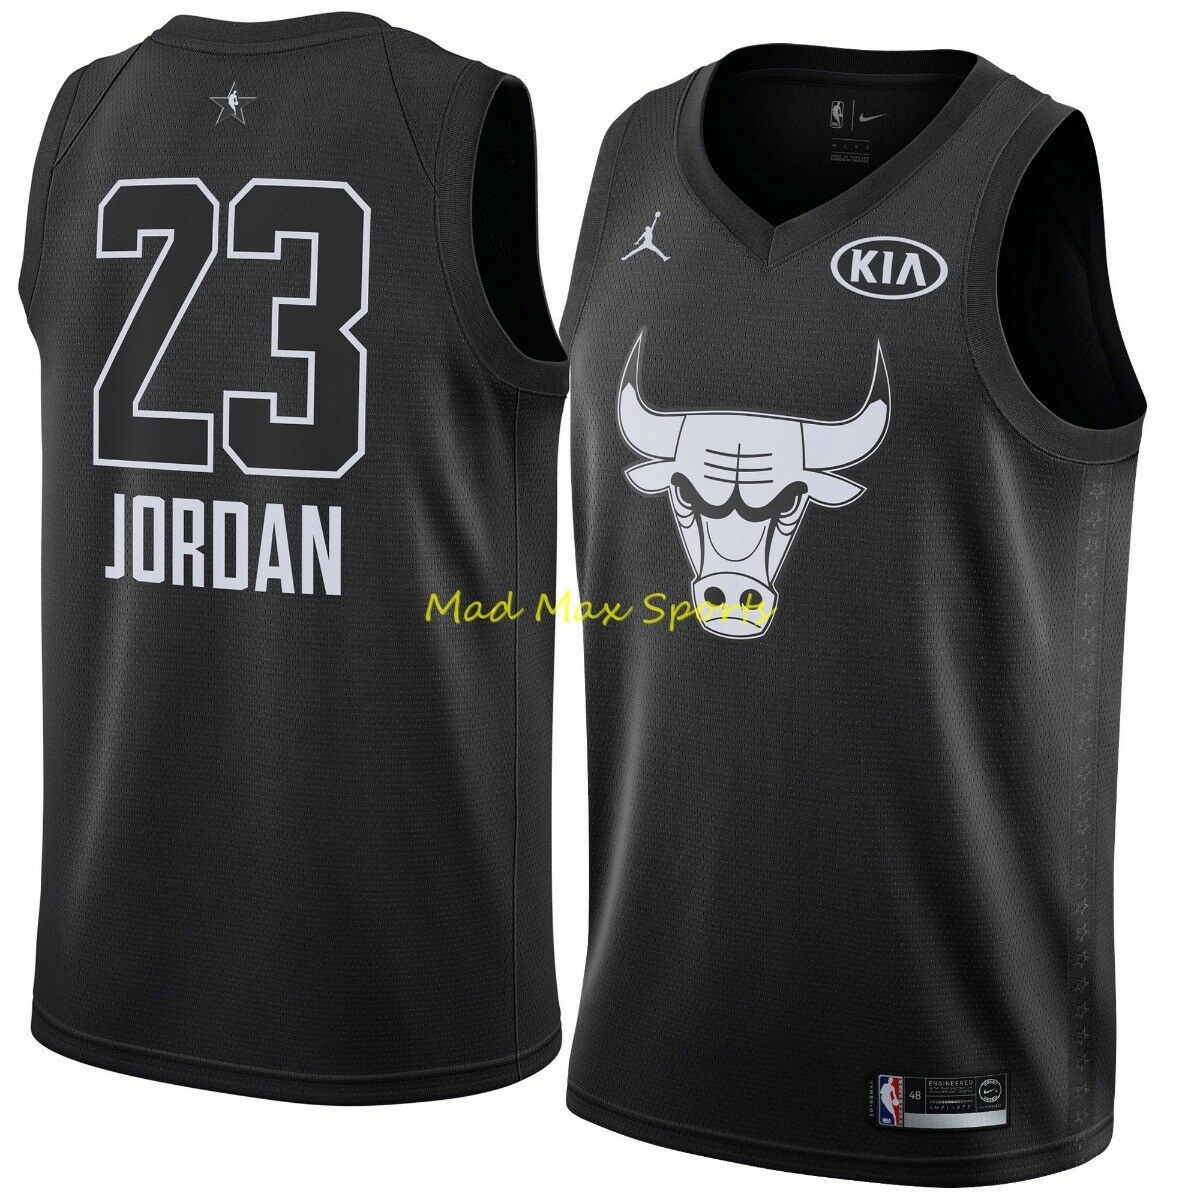 Michael Jordan Chicago Bulls Black 2018 KIA All Star Game Authentic Jersey  M 44 for sale online  3d89ccbbf